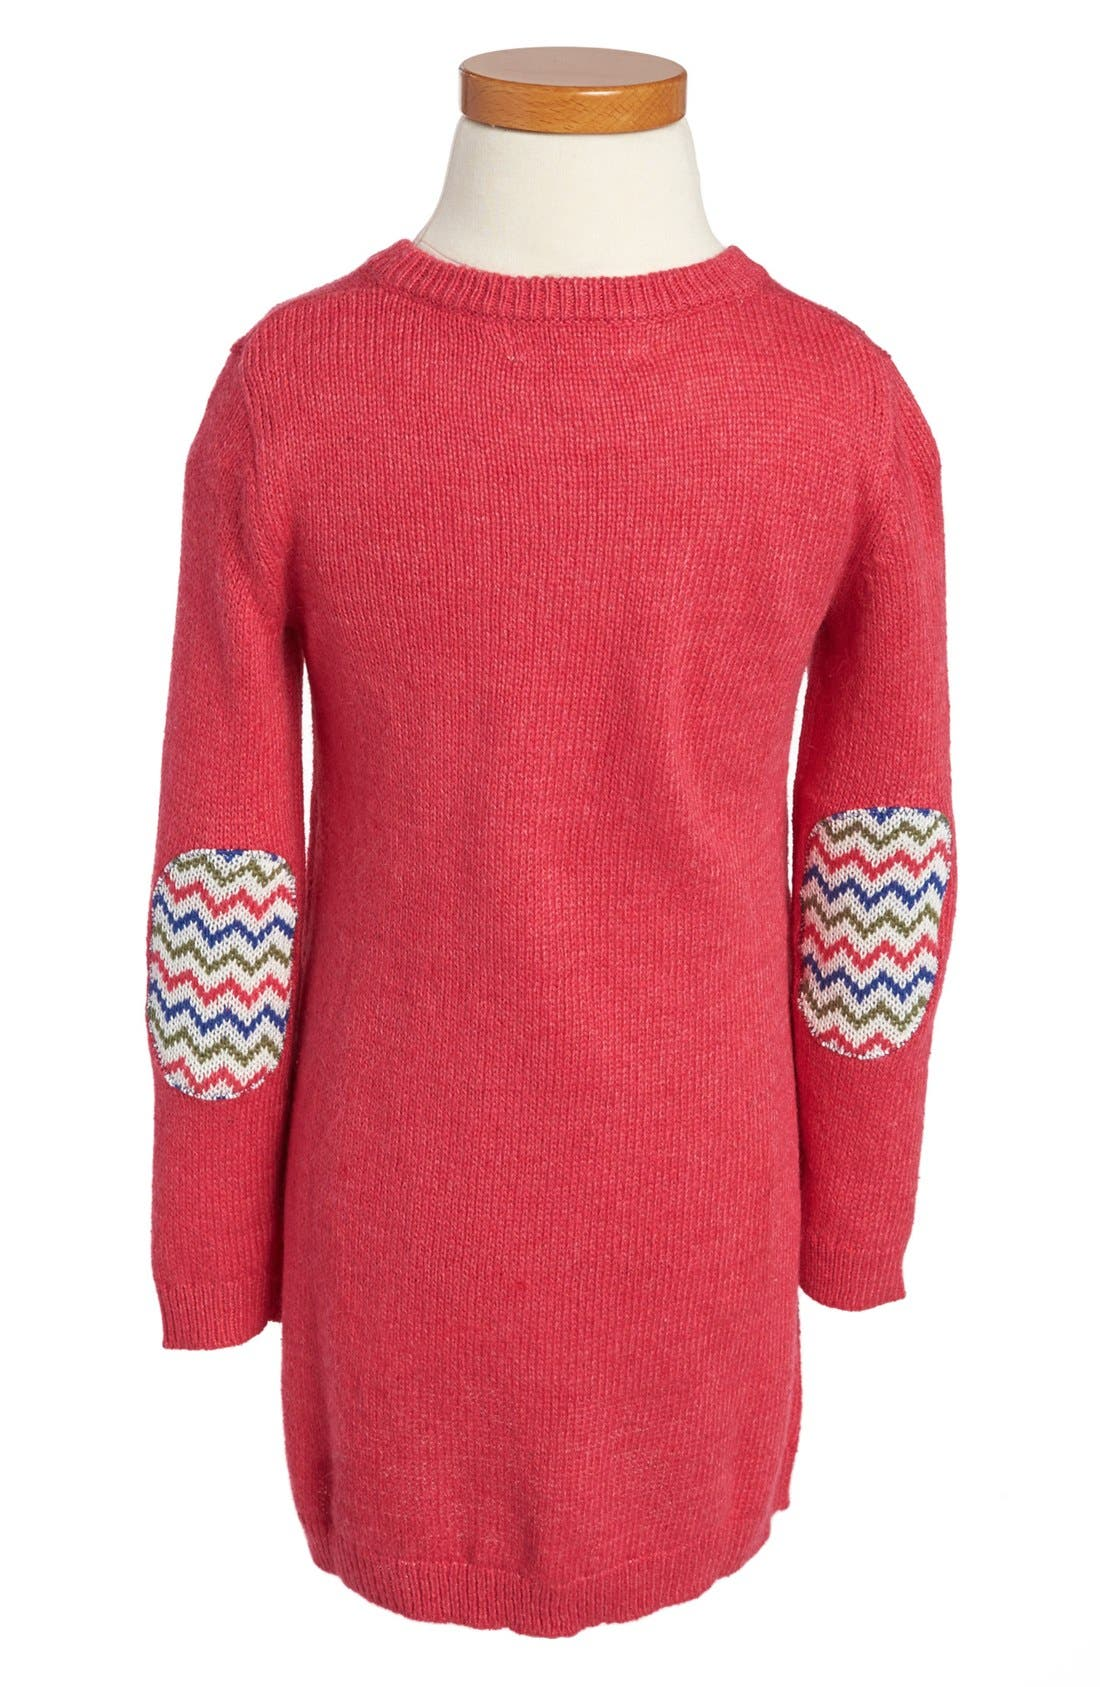 Alternate Image 2  - Tucker + Tate 'Chantel' Intarsia Knit Dress (Toddler Girls)